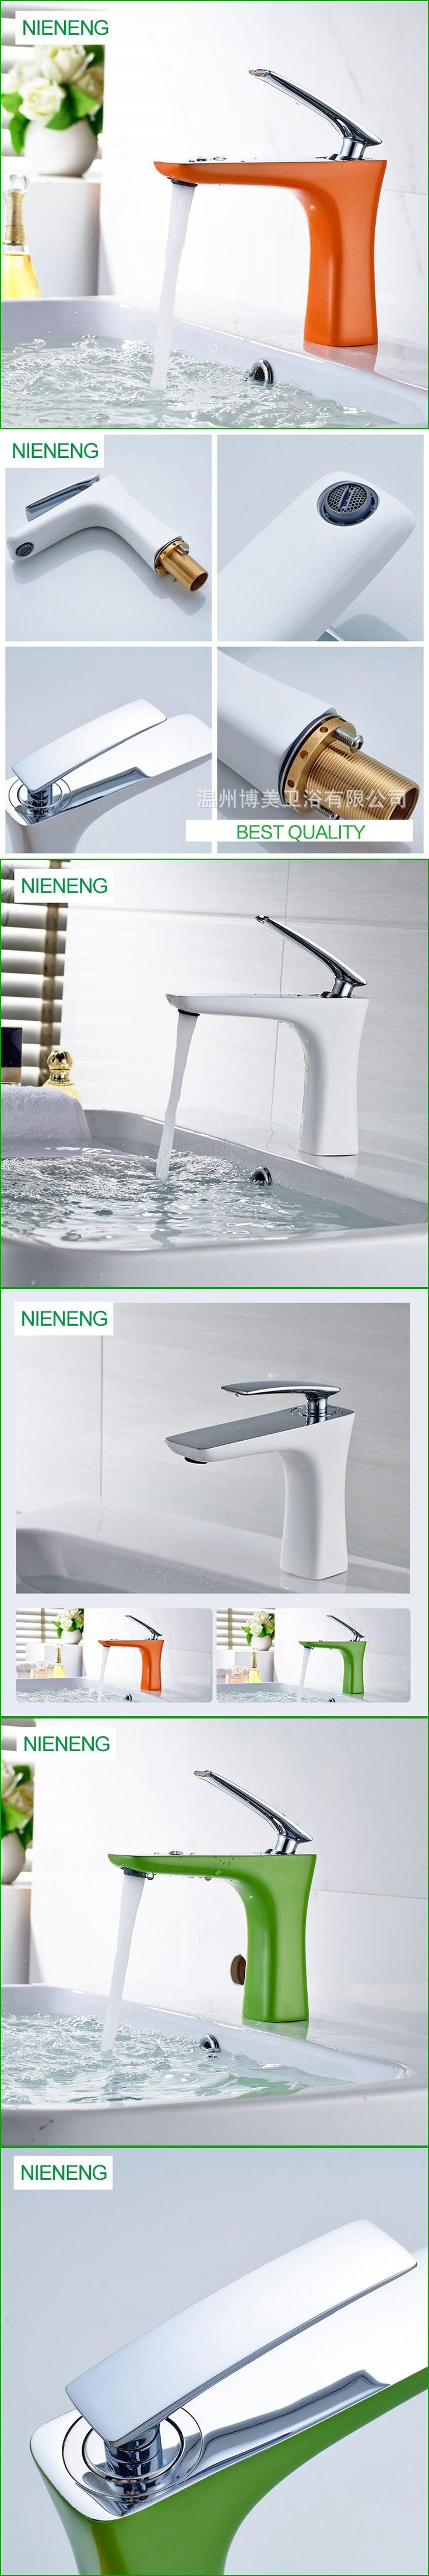 NIENENG bathroom faucet copper basin sink mixers white faucets sink taps green luxury cabinet tap mixer accessories ICD60166